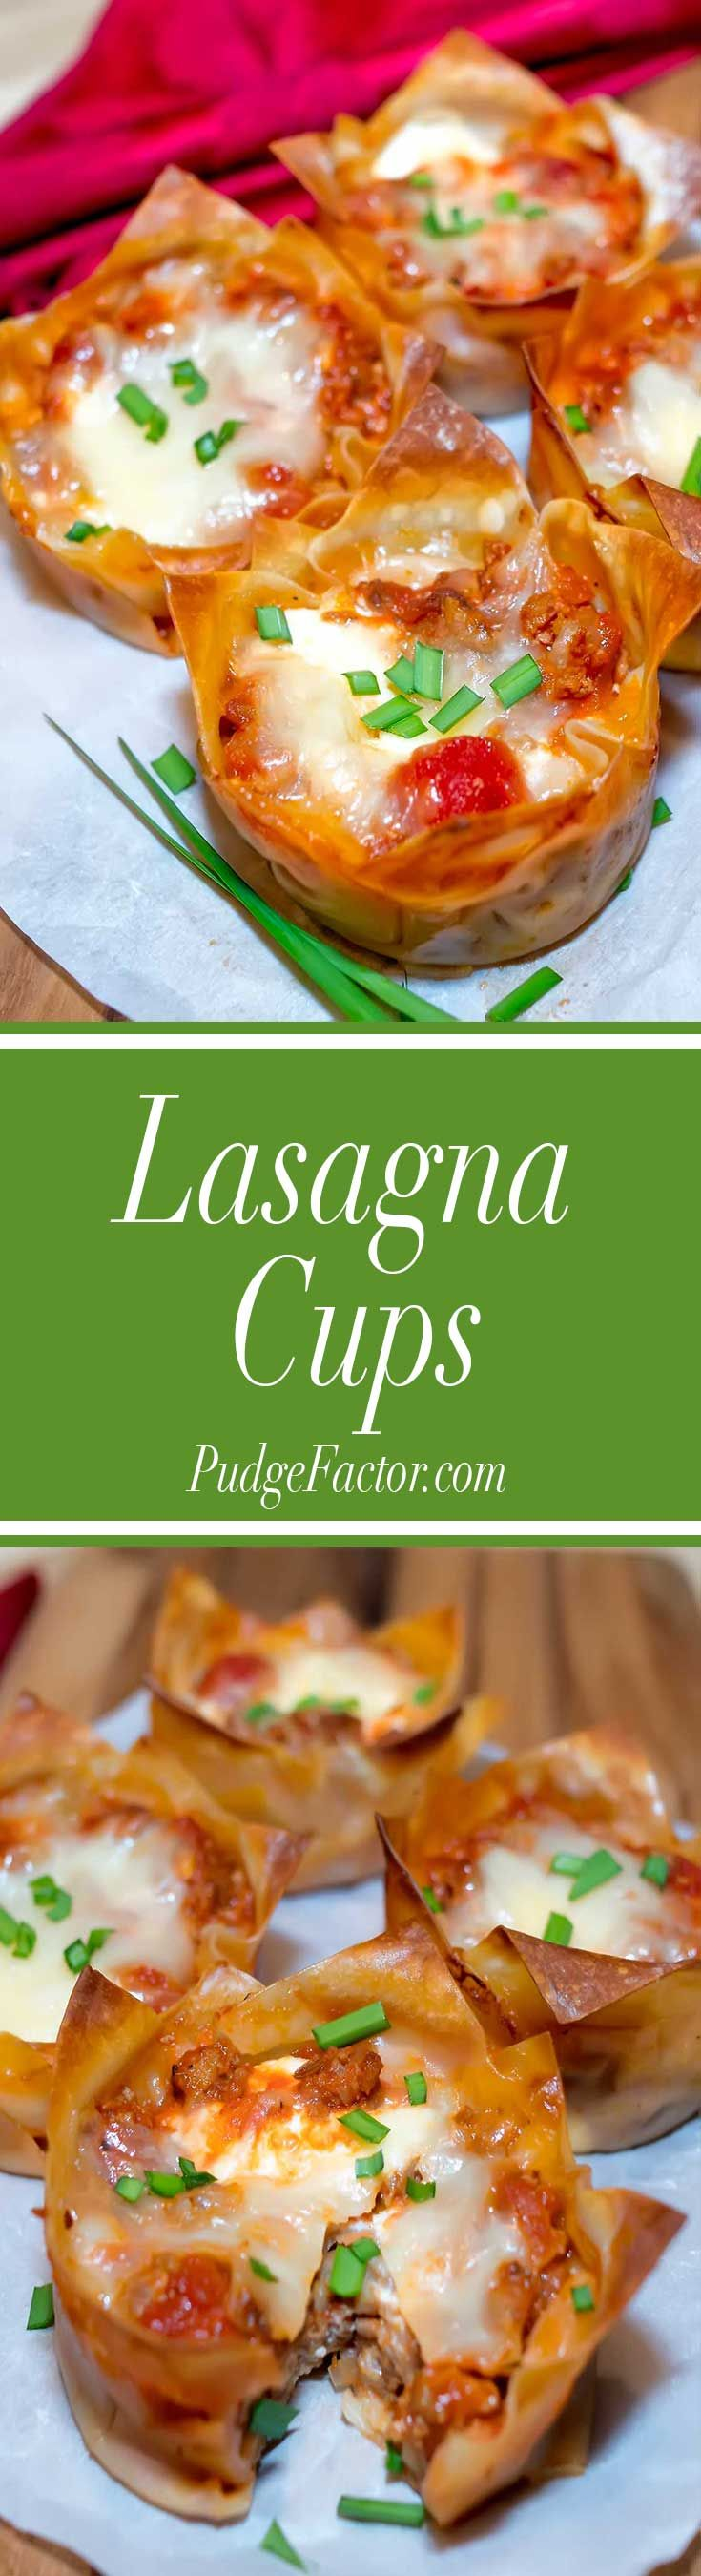 Classic lasagna ingredients, layered in wonton wrappers and baked it in a muffin tin.